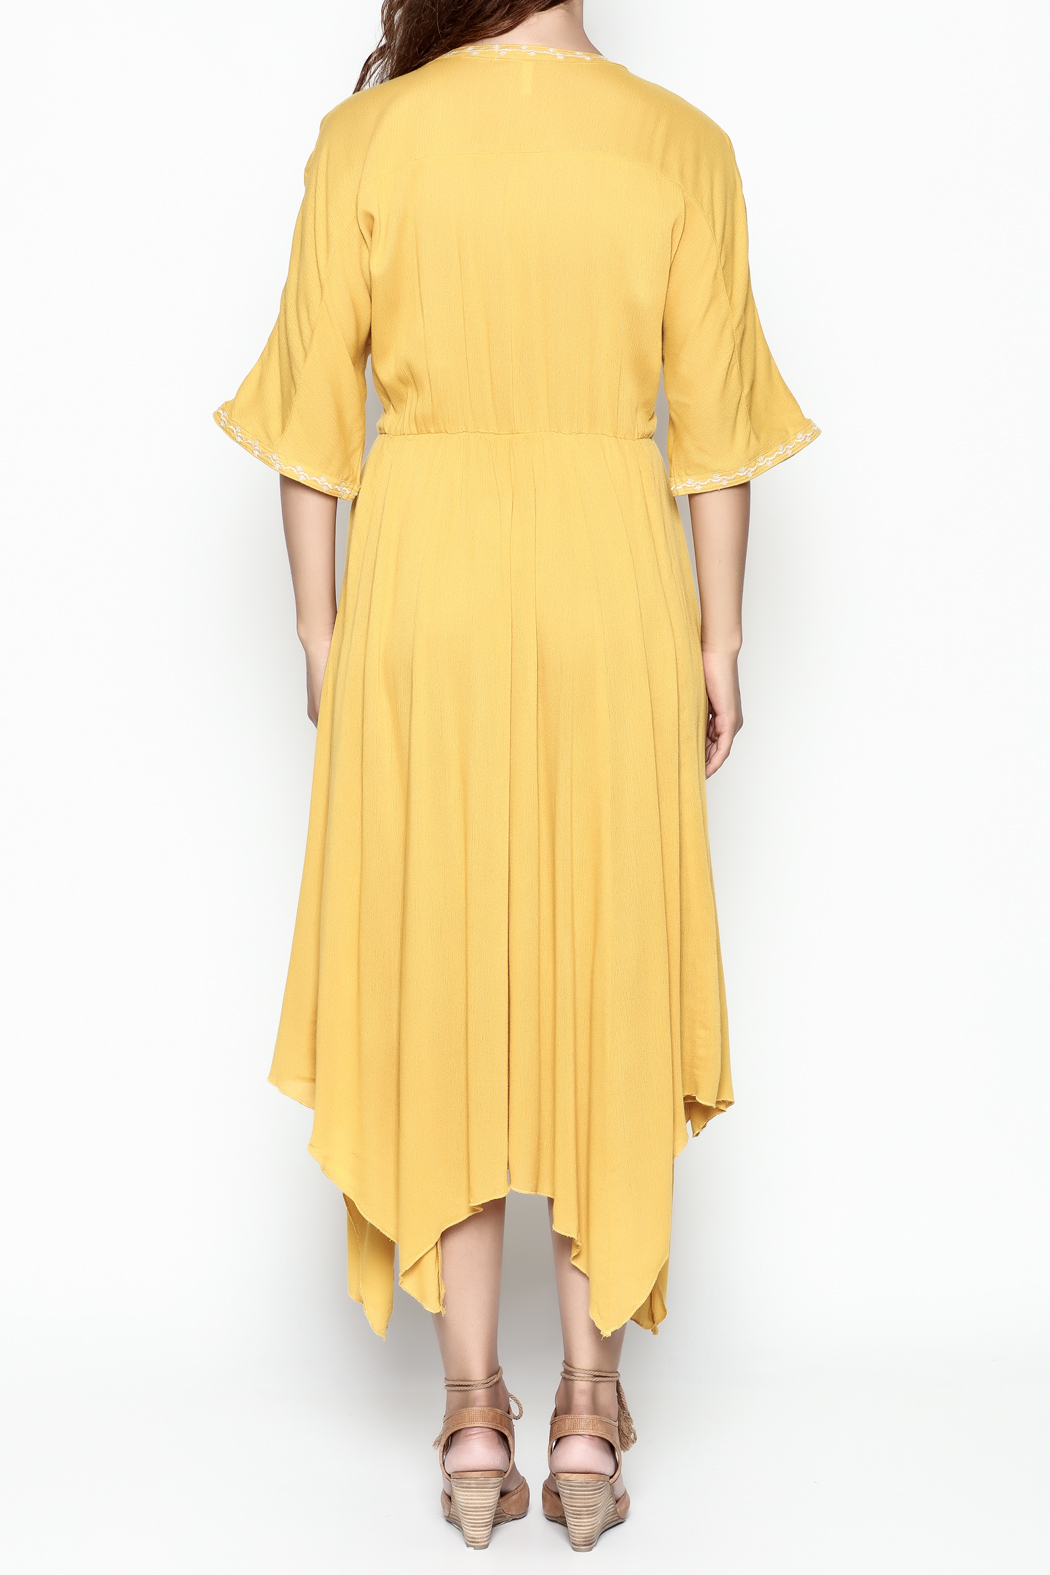 Runway & Rose Yellow Embroidered Dress - Back Cropped Image